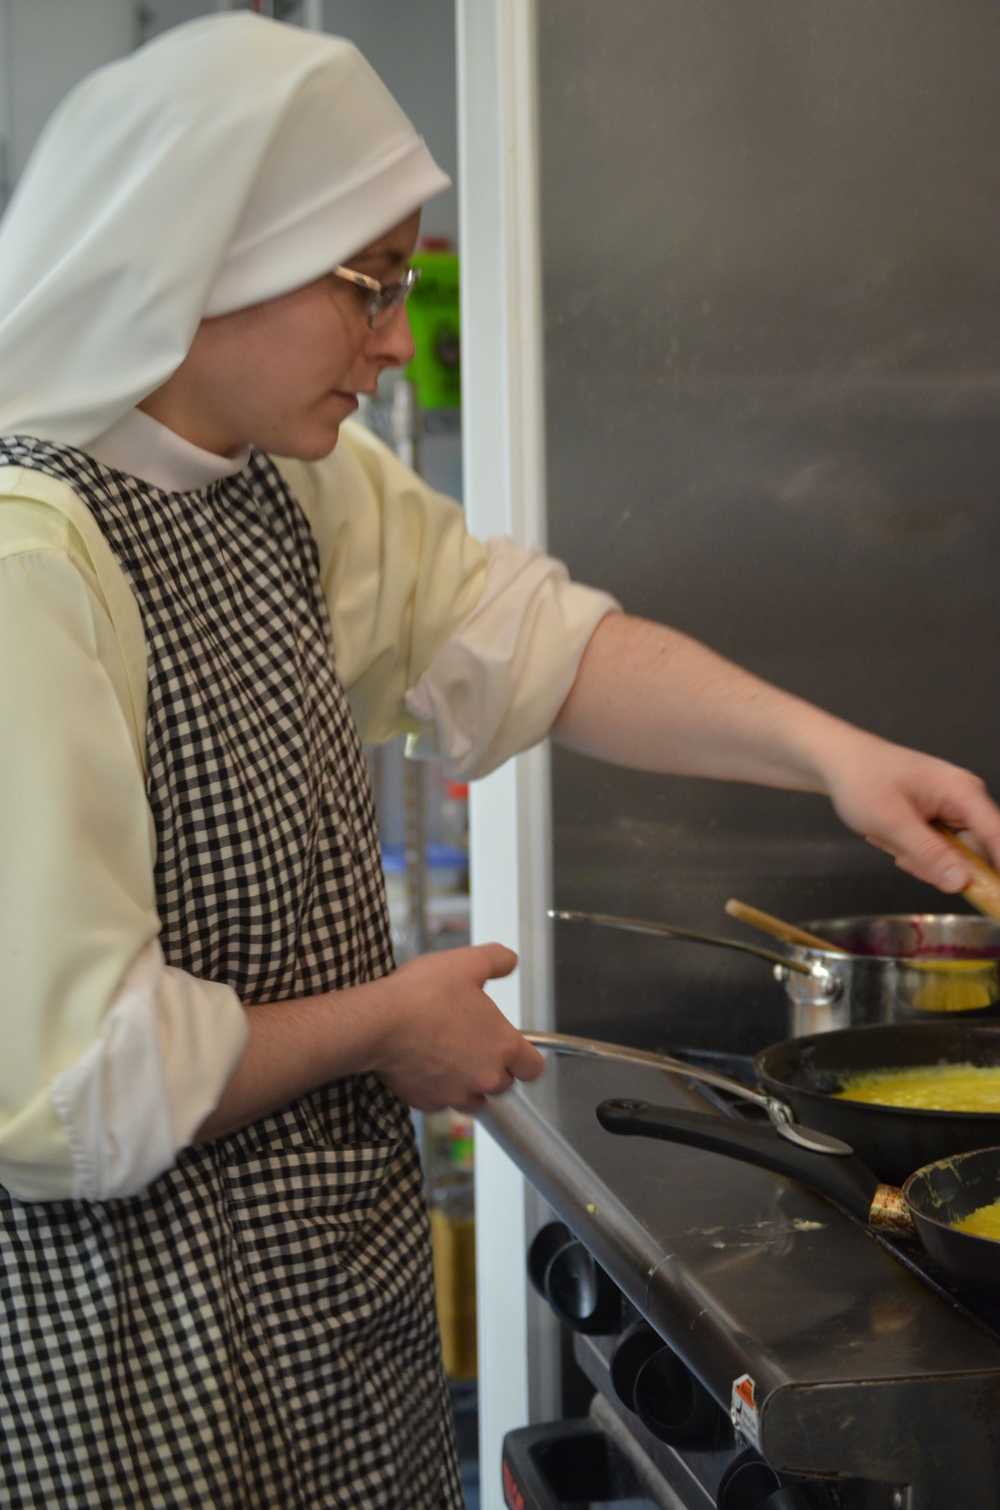 Sr. Mary Ana is a pro at scrambled eggs